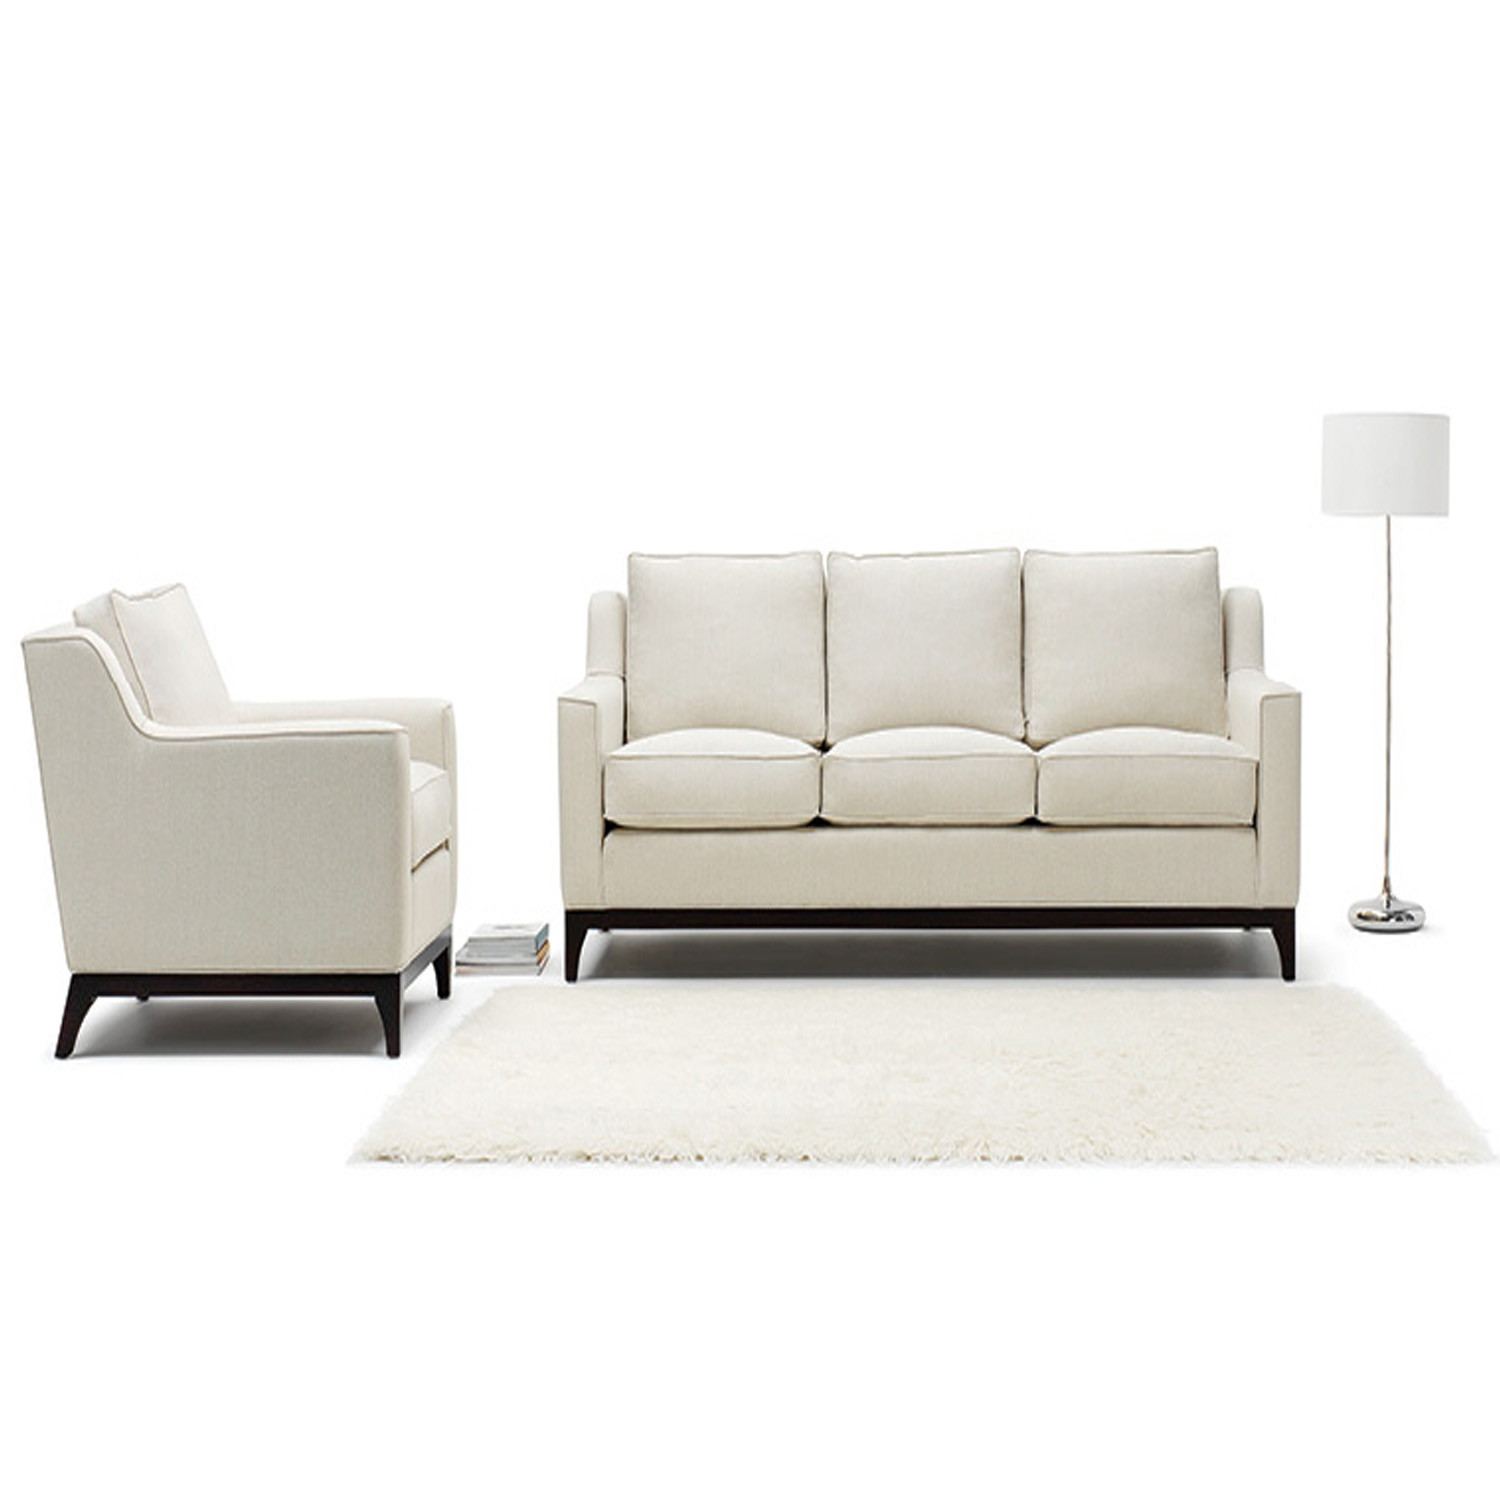 Lysander Large Sofa and Armchair